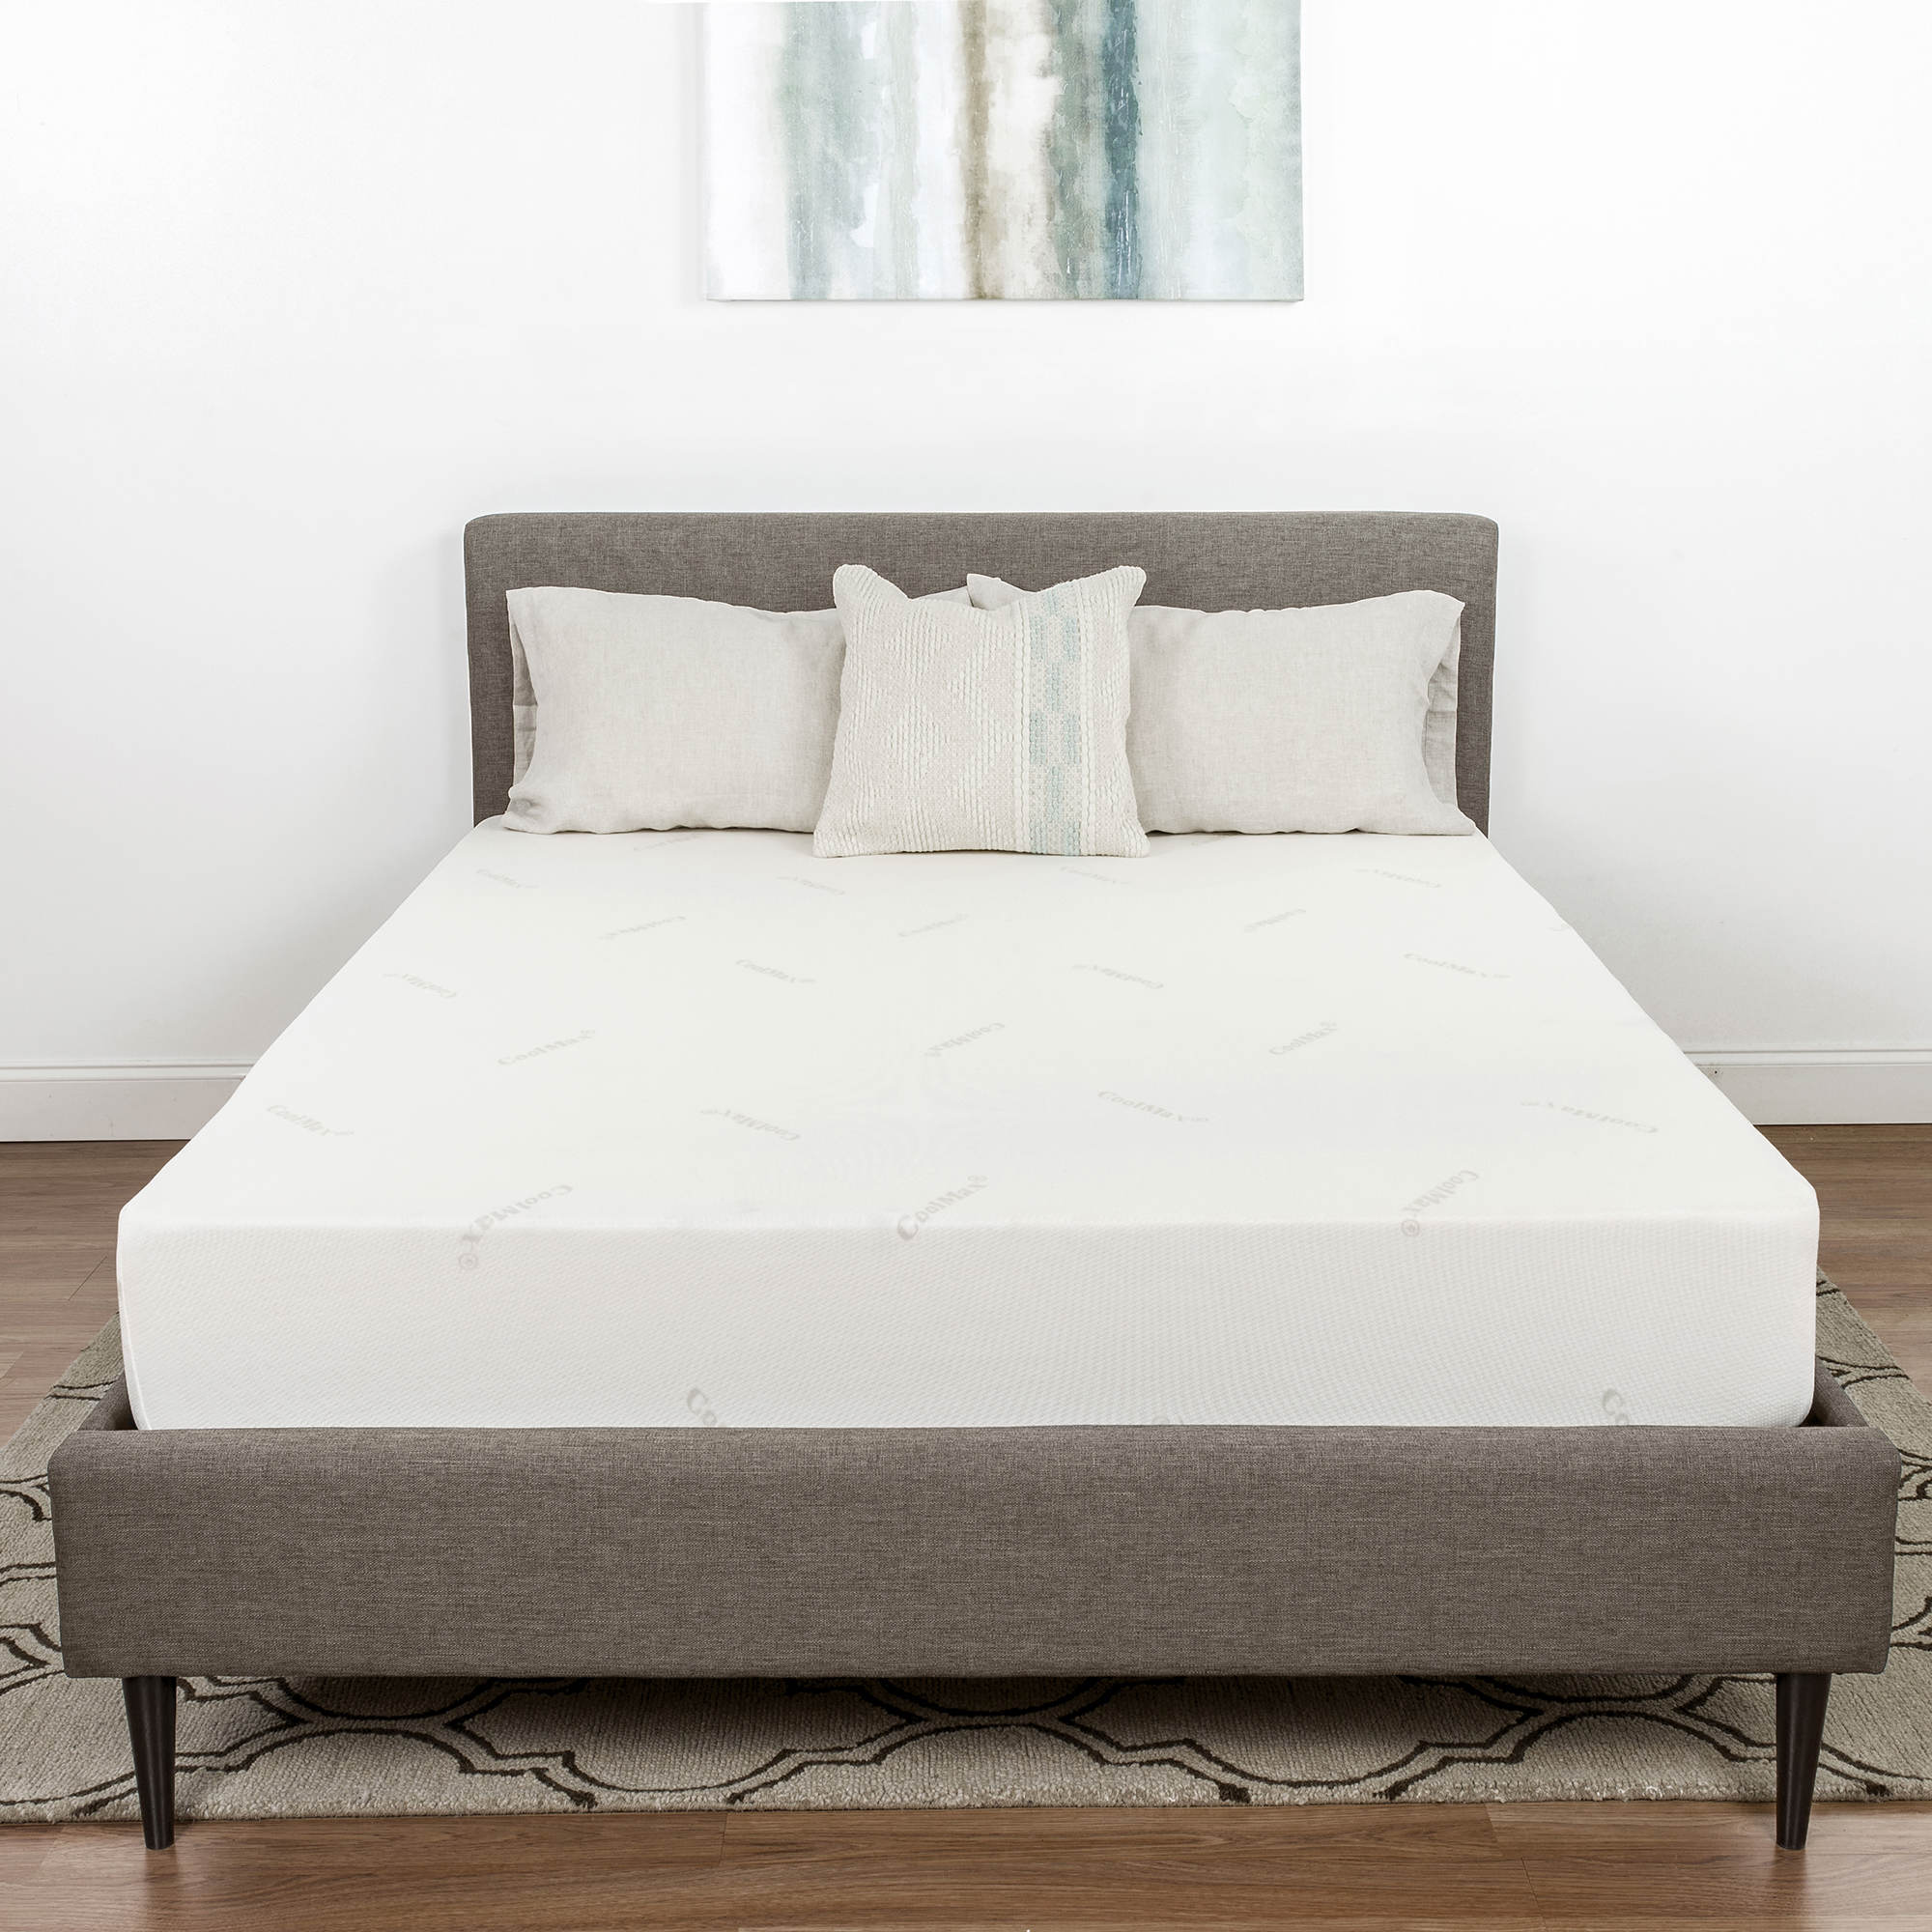 queen memory foam mattress gel therapedic bliss s quot cradlesoft size lovely set luxury bj i care bjs of quilted